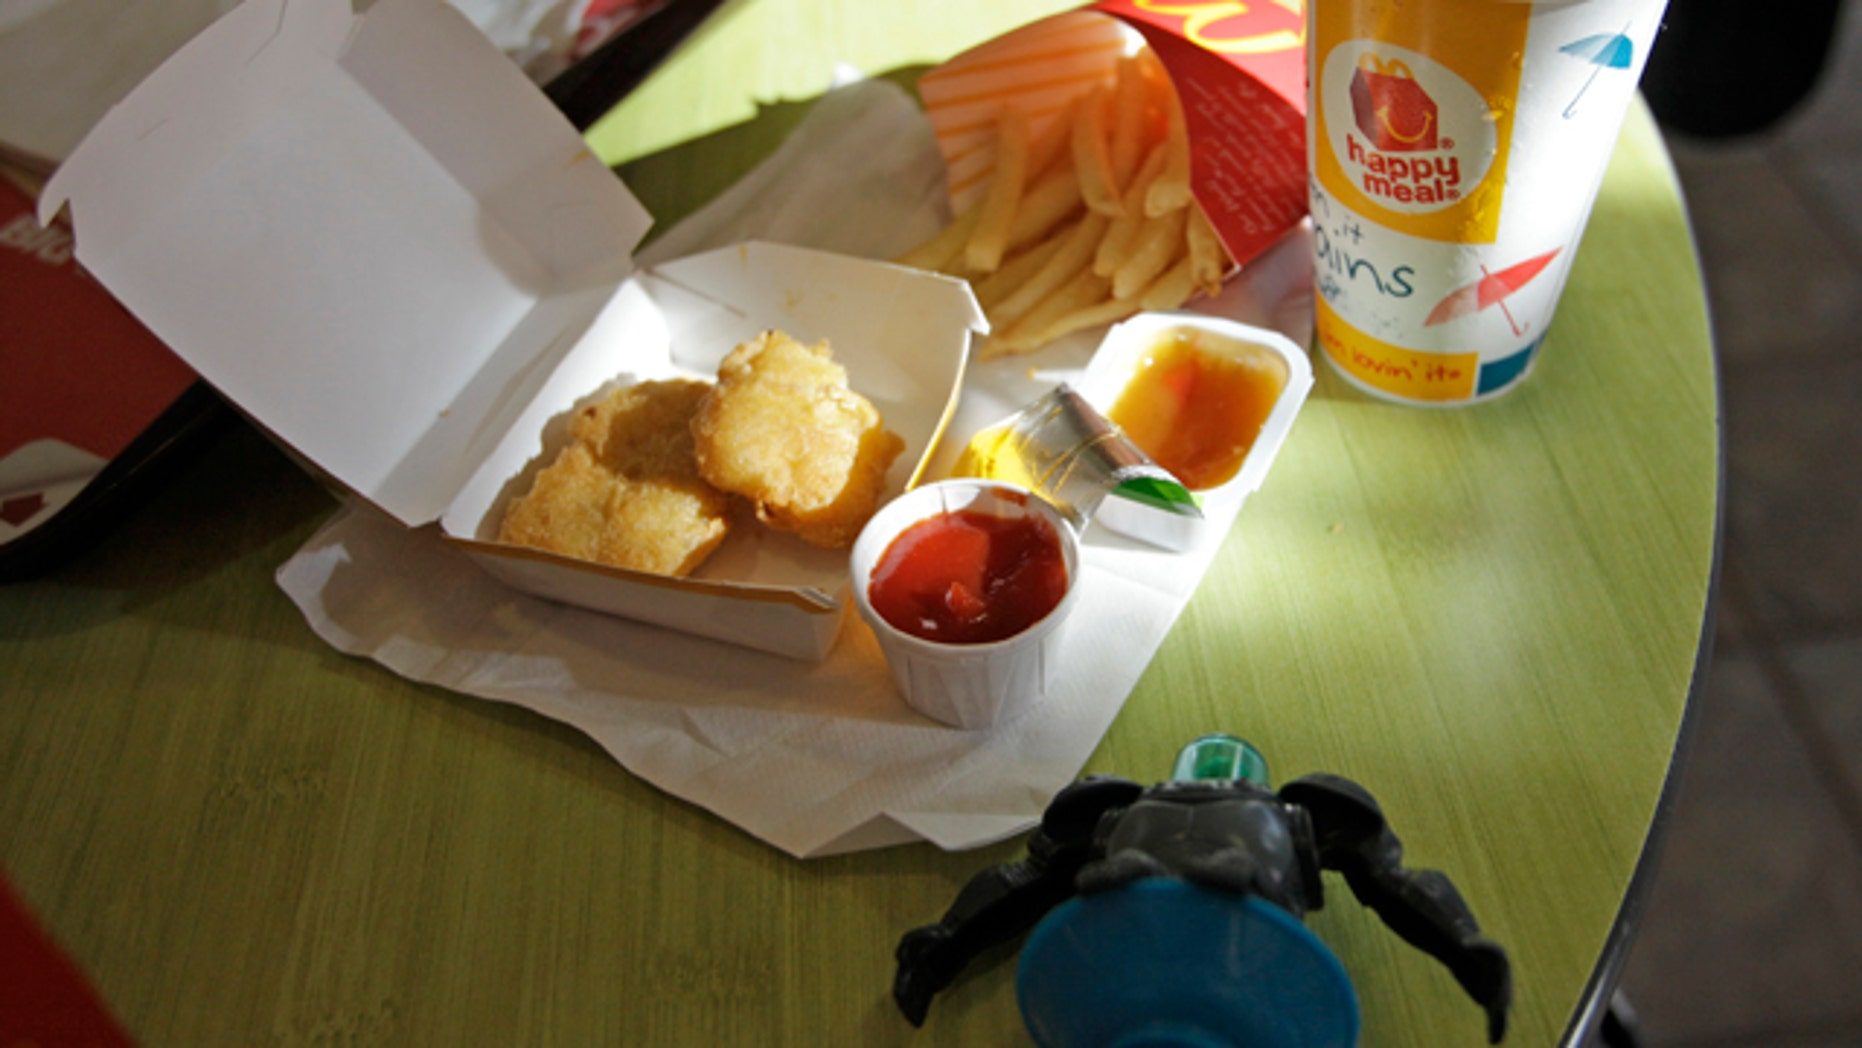 Shown is a Happy Meal at a McDonald's restaurant in San Francisco, Monday, Nov. 8, 2010. In the foreground is a character toy included with the meal from the movie Megamind. It is a happy moment for people who see the Happy Meal as anything but.  San Francisco is poised to become the first major American city to require fast-food restaurants to sell meals that meet set nutritional guidelines or not include a toy with them. (AP Photo/Eric Risberg)